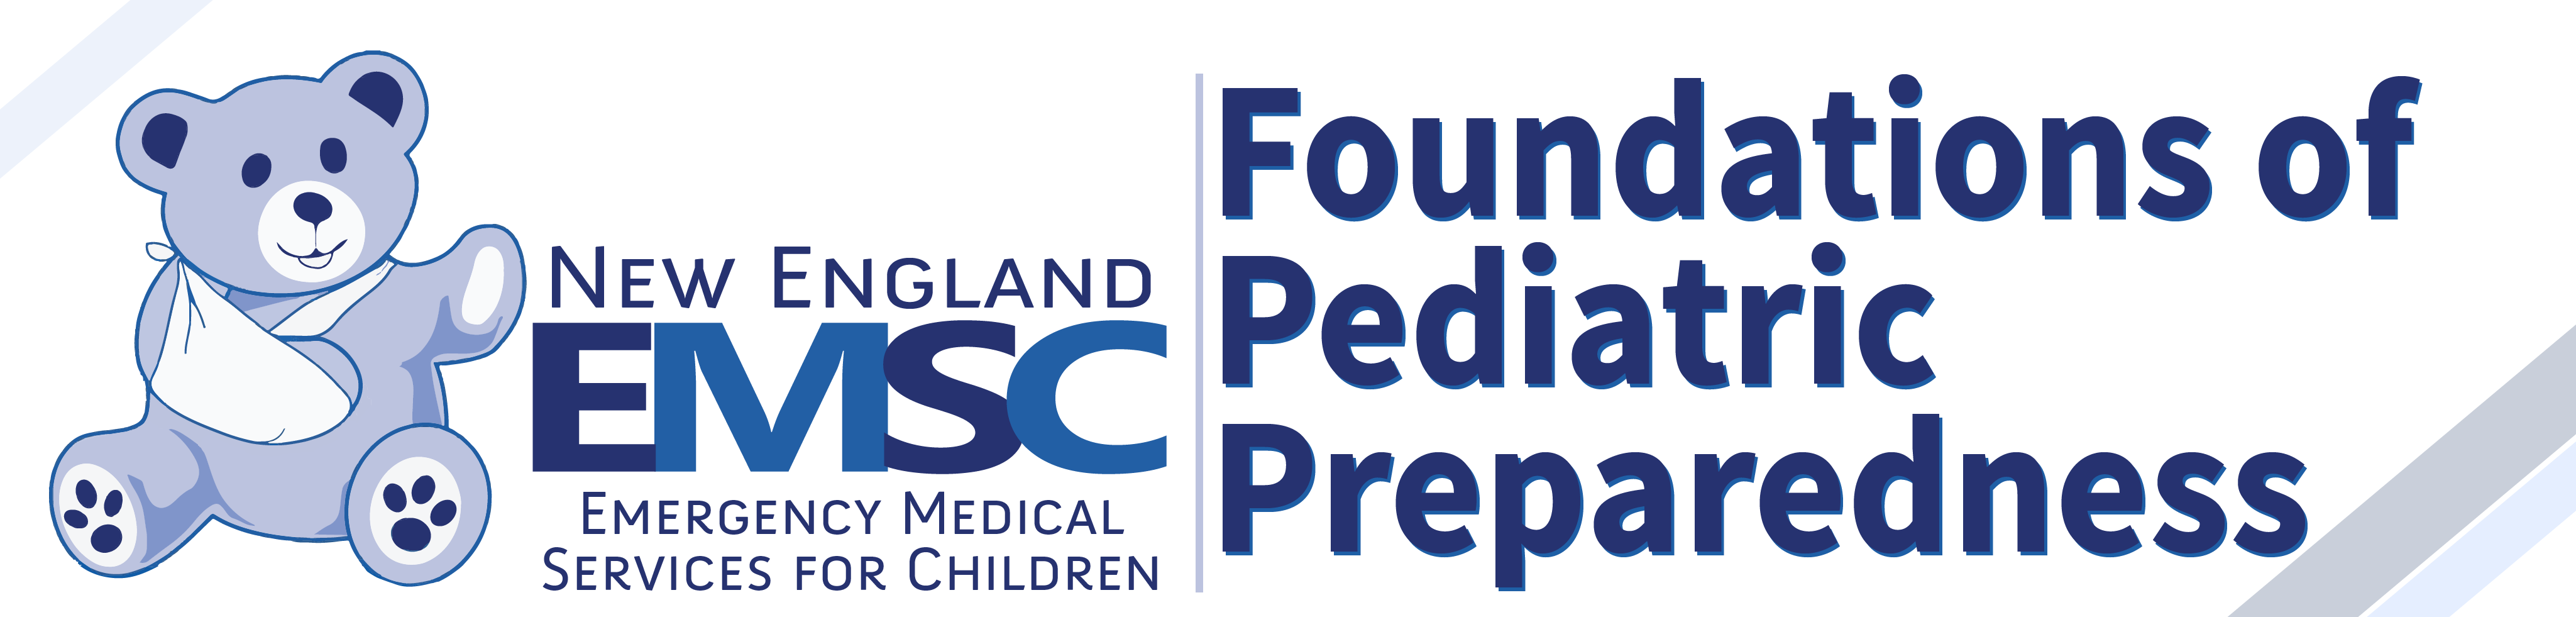 Foundations of Pediatric Preparedness (516)